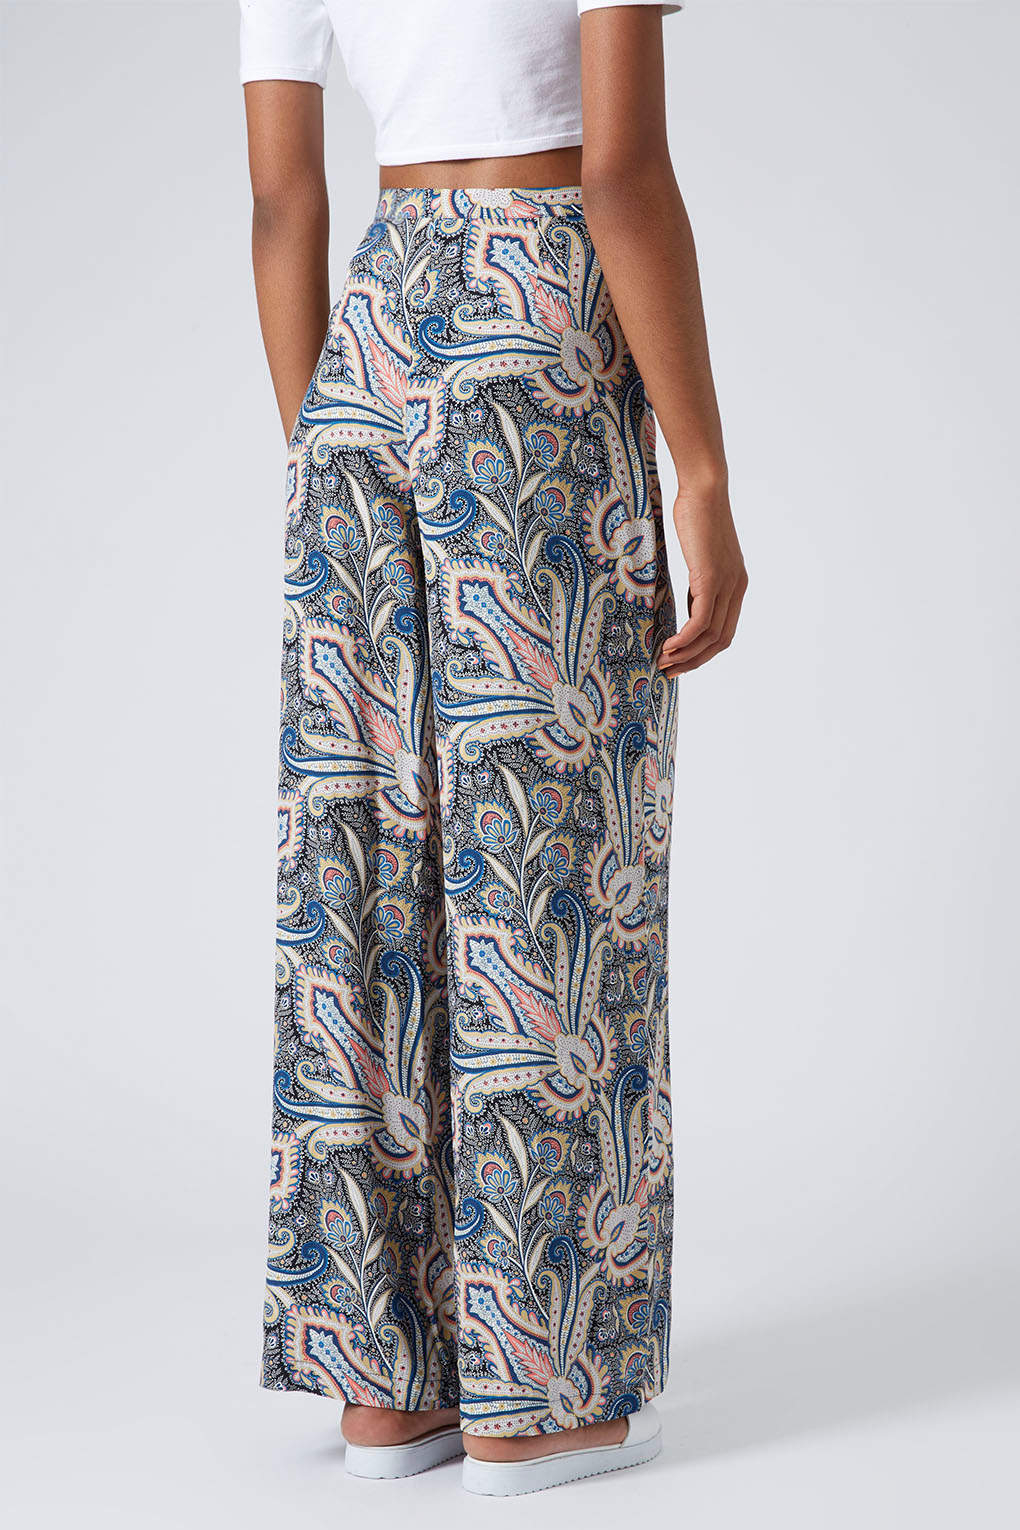 0ad4f237940 Lyst - TOPSHOP Wide Leg Paisley Trousers Multi